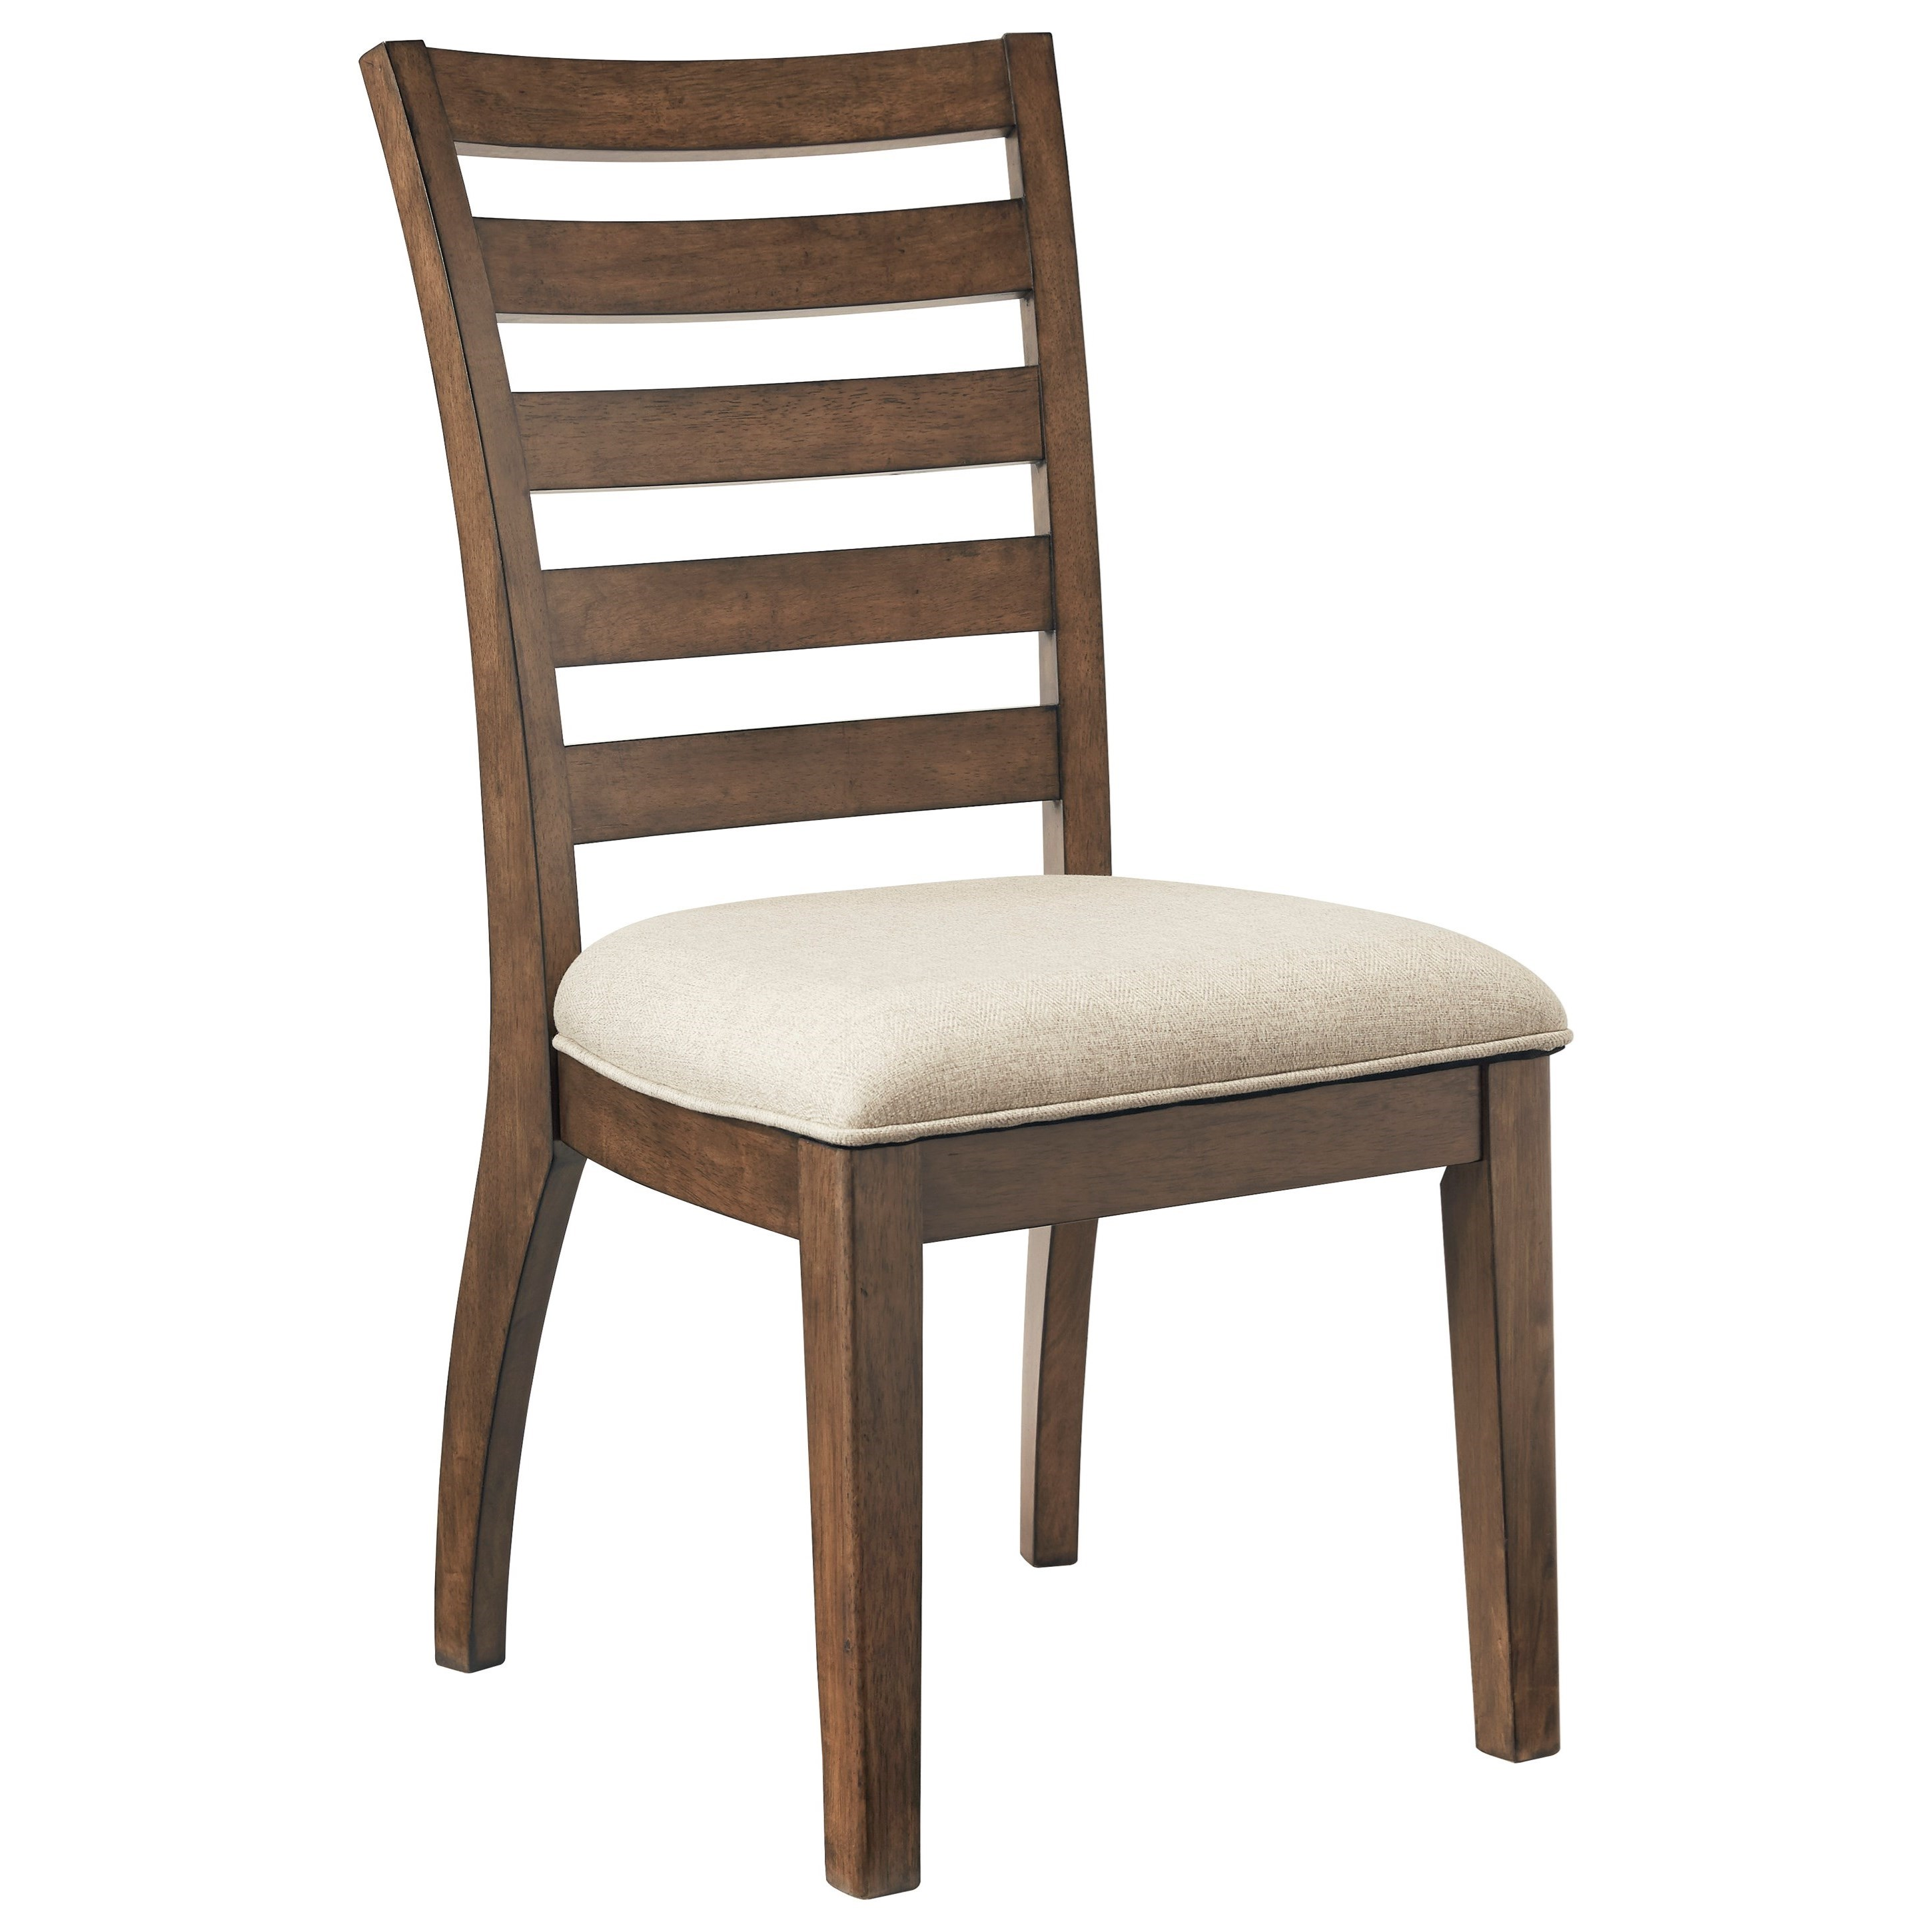 Flynnter Upholstered Side Chair by Signature Design at Fisher Home Furnishings